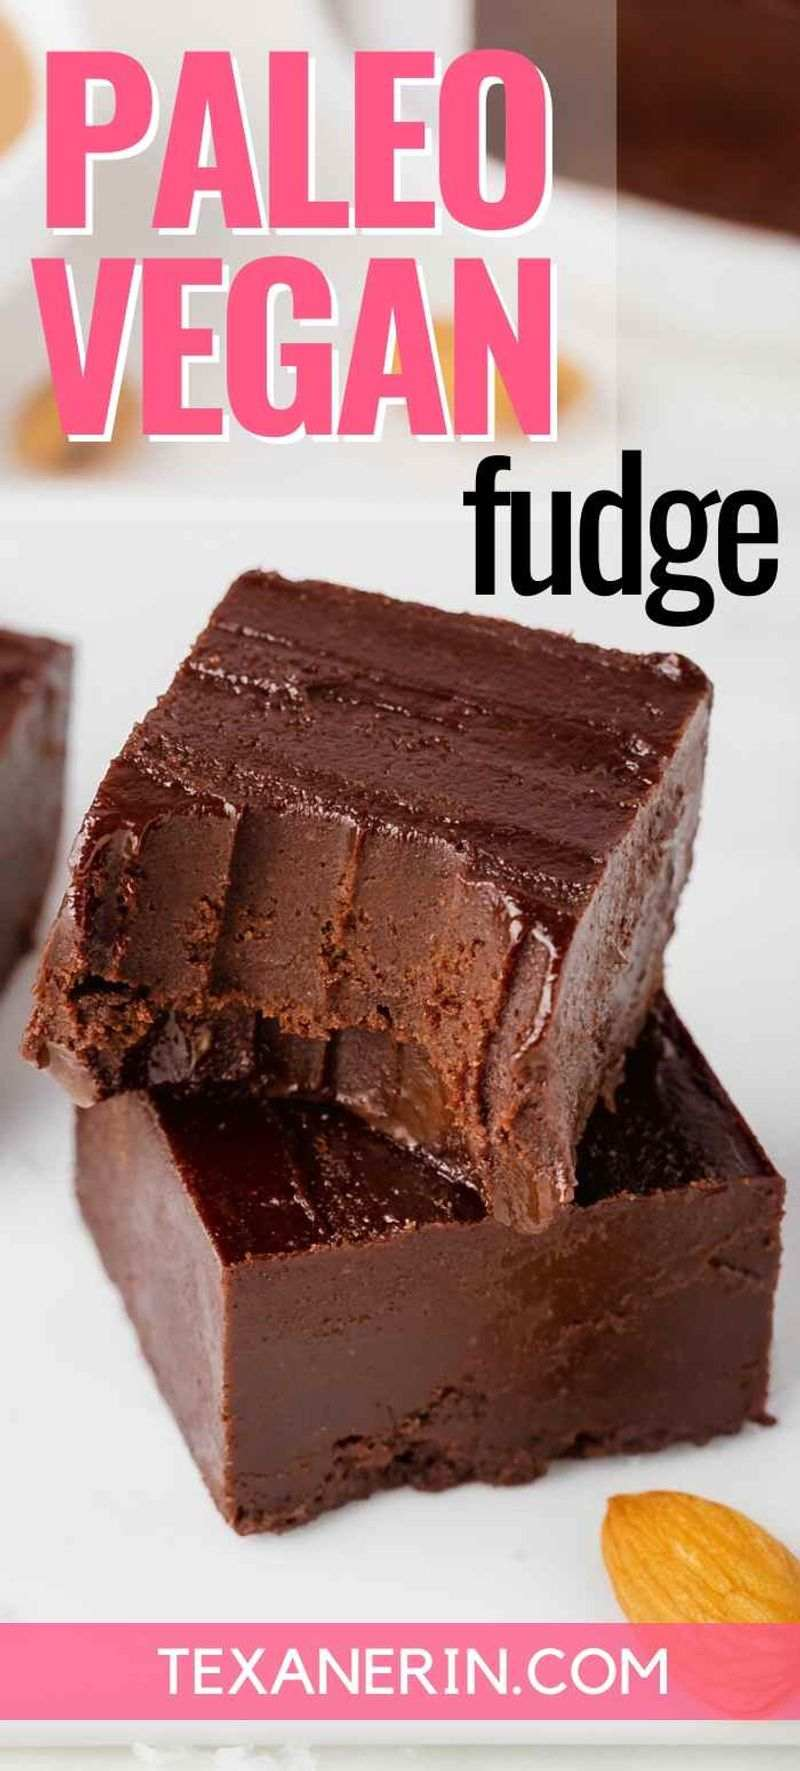 This paleo fudge is made healthier with almond butter and maple syrup and has the most amazingly creamy texture! It's also vegan, dairy-free and no cooking is required.